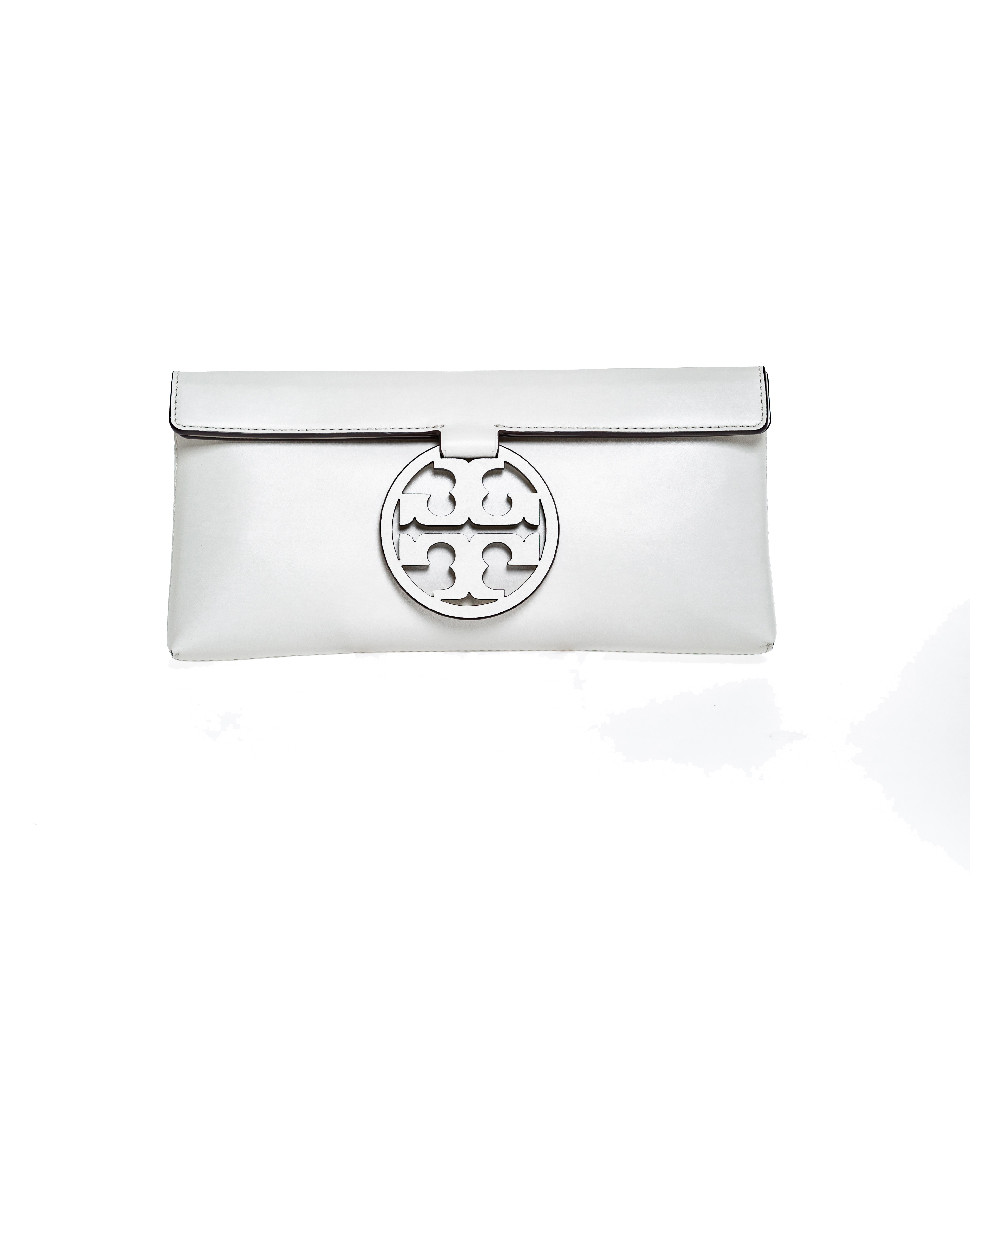 "Small cream colored pouch Tory Burch ""Miller Clutch"" for women"